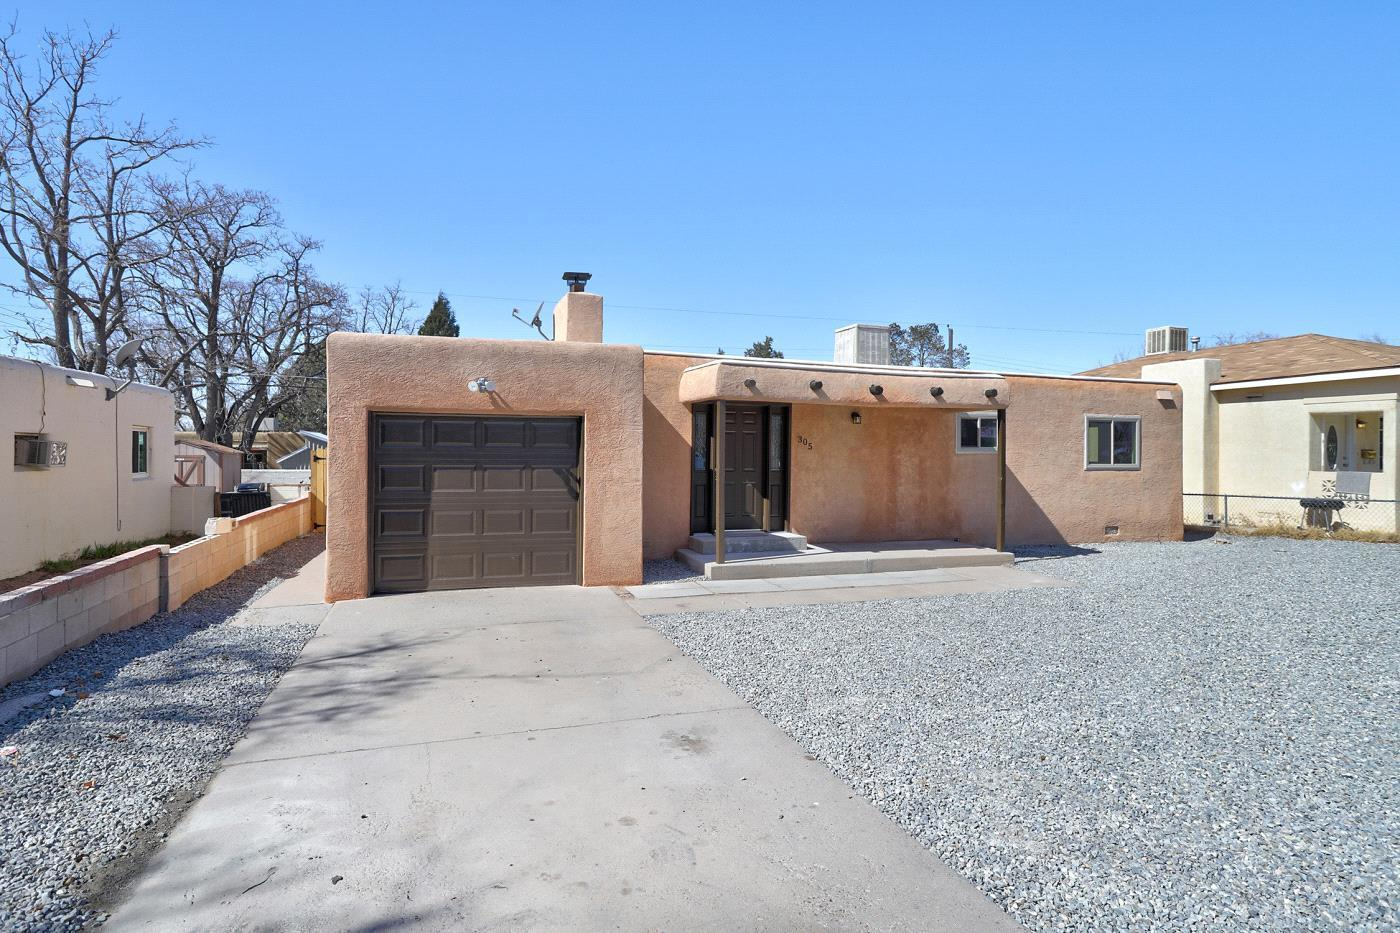 COME SEE this BEAUTIFULLY Remodeled single story home in the heart of Albuquerque!! Interior complete with DESIGNER SELECTED TWO TONE paint, PLUSH New Carpet, and a DAZZLING Lighting Package!! This home has it all and features a NEW ROOF, NEW WINDOWS, NEW FURNACE, NEW WATER HEATER, BEAUTIFULLY Updated Bathroom and the updated Kitchen features brand NEW Stainless Steel Appliances!! Great location near the Fair Grounds, UNM, NOB HILL and close to several schools, parks, and shopping centers!!  Don't Miss out on your chance to own this true Gem!! SPOTLESS AND MOVE IN READY!!